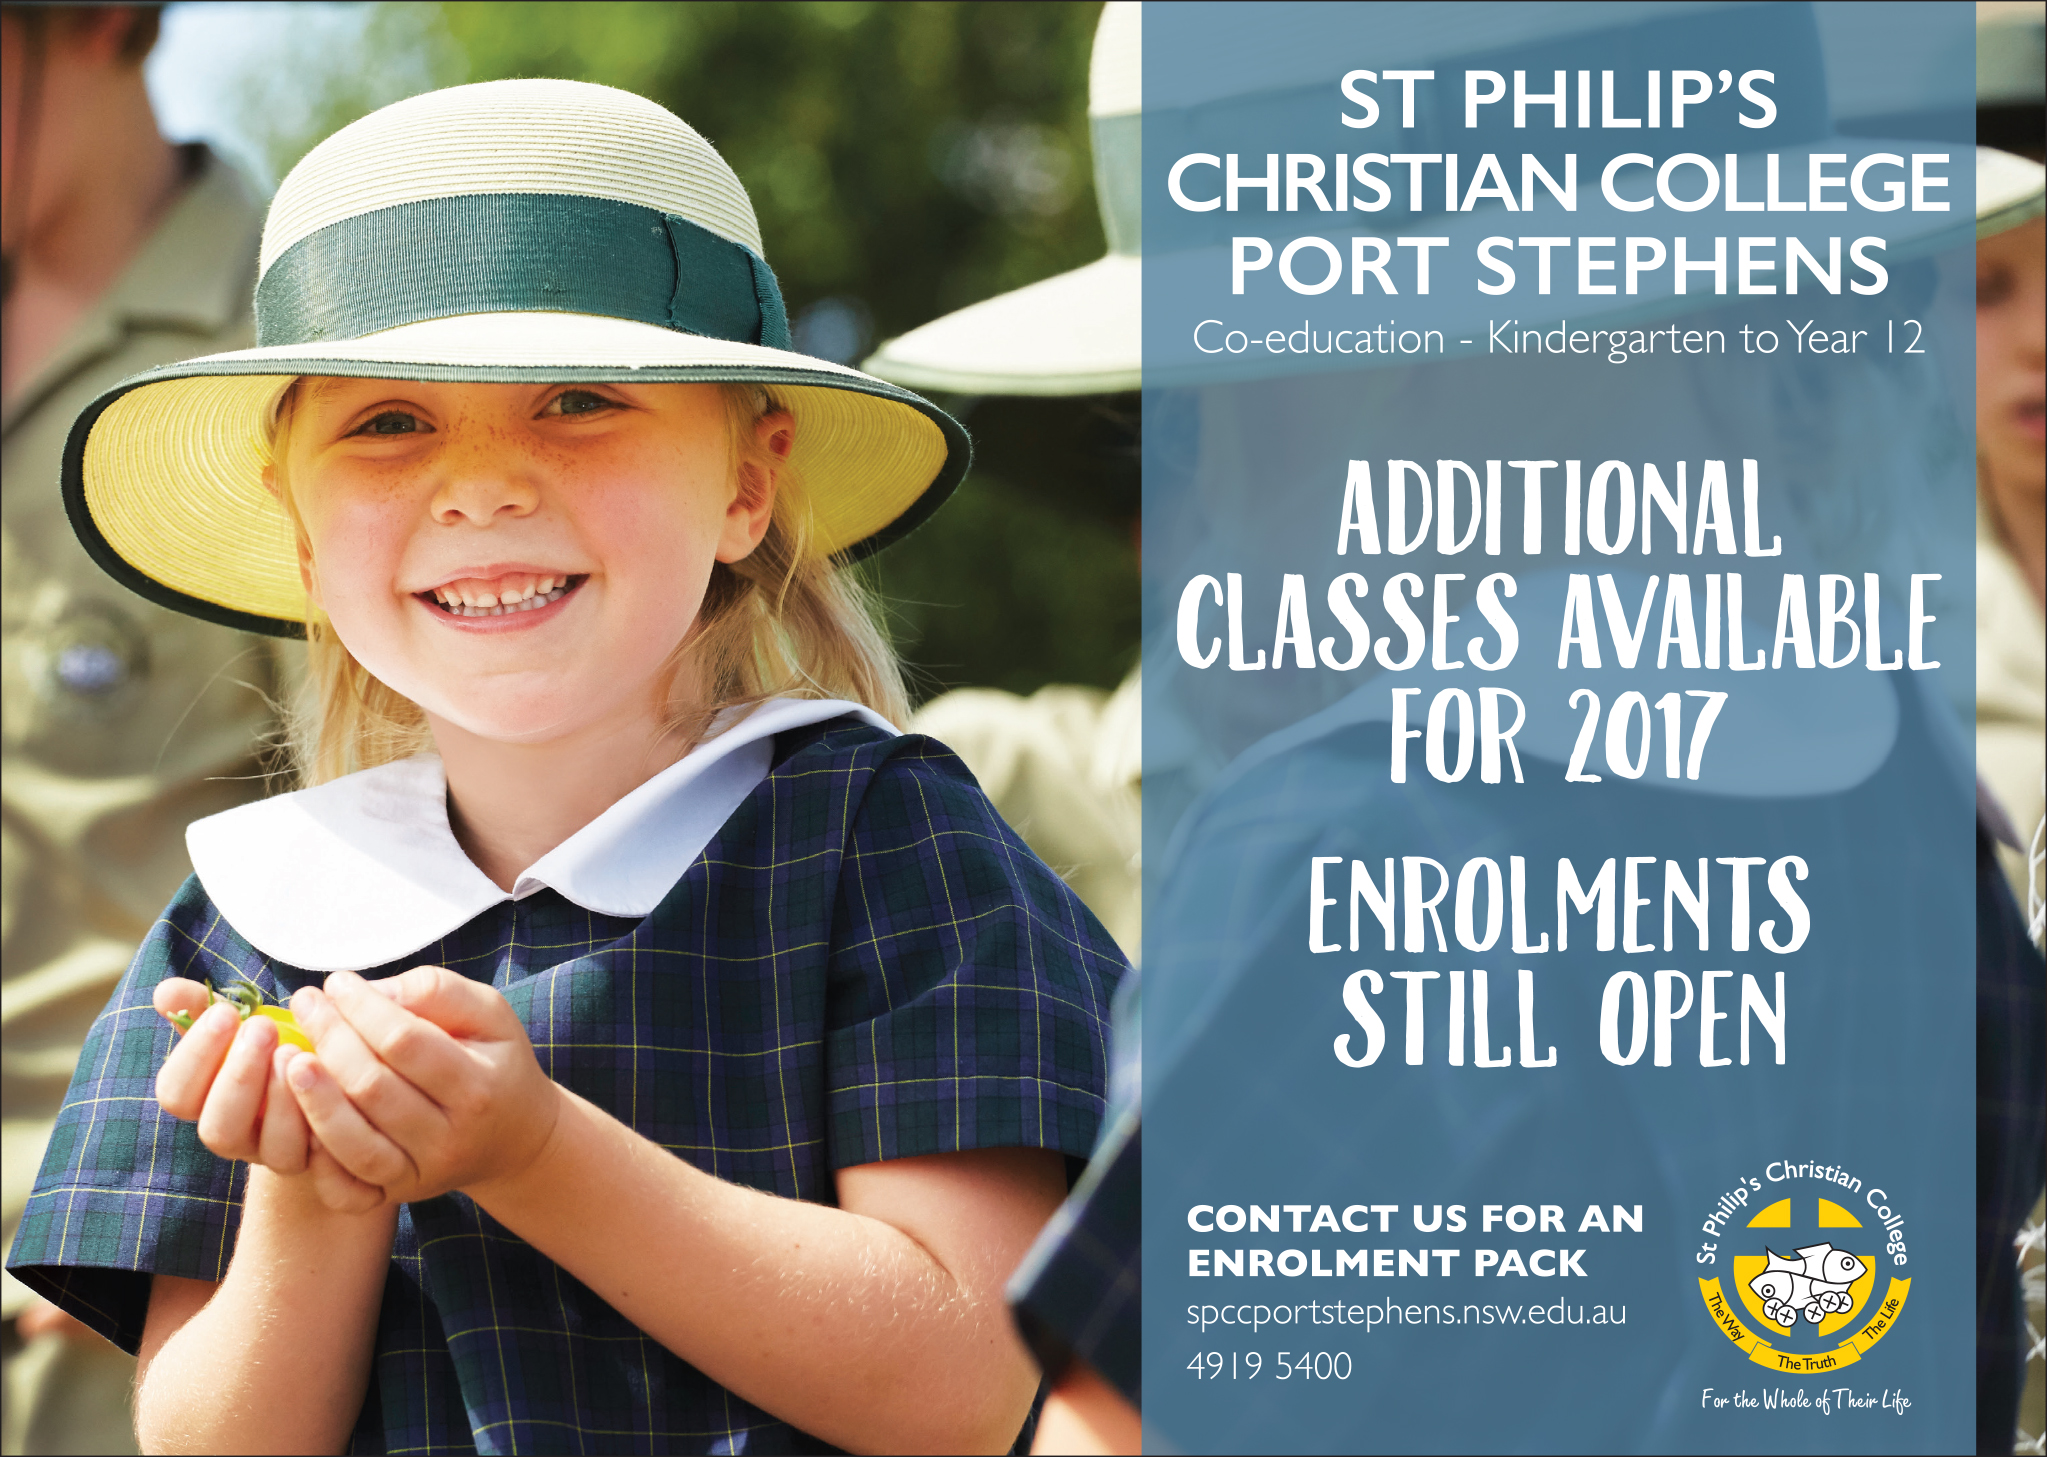 St Philips Christian College